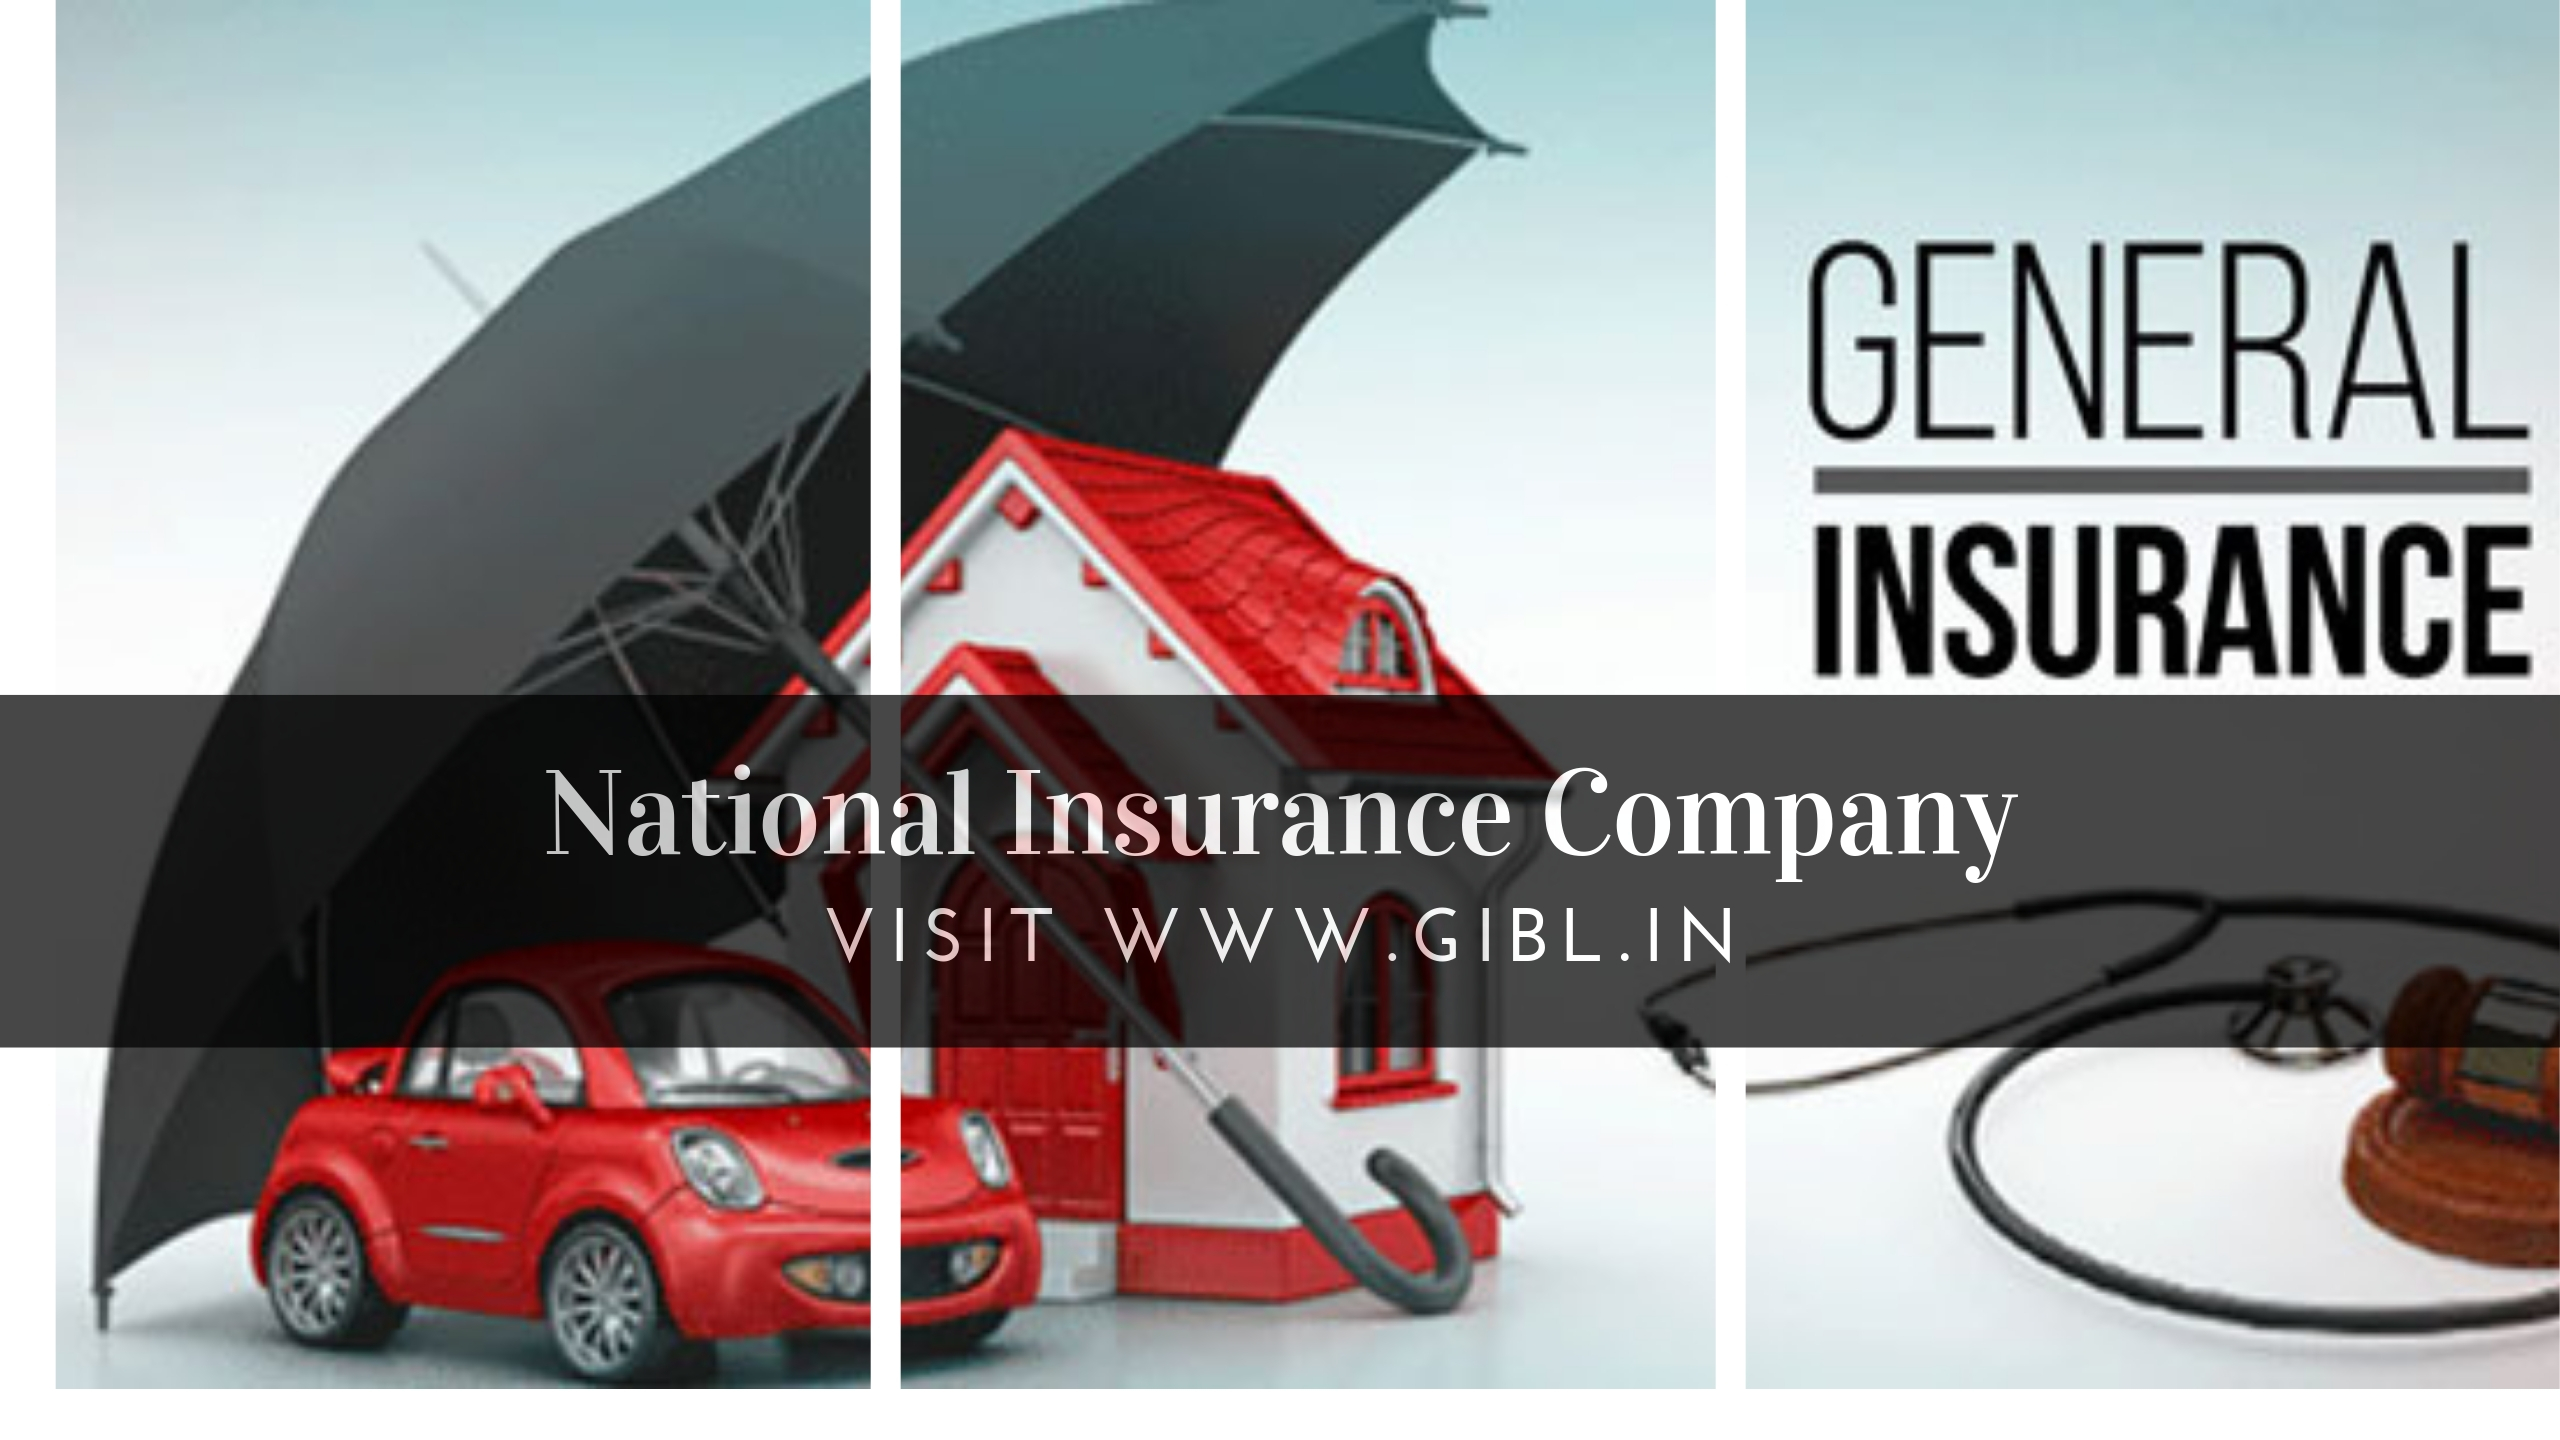 National Insurance Company Renewal Online